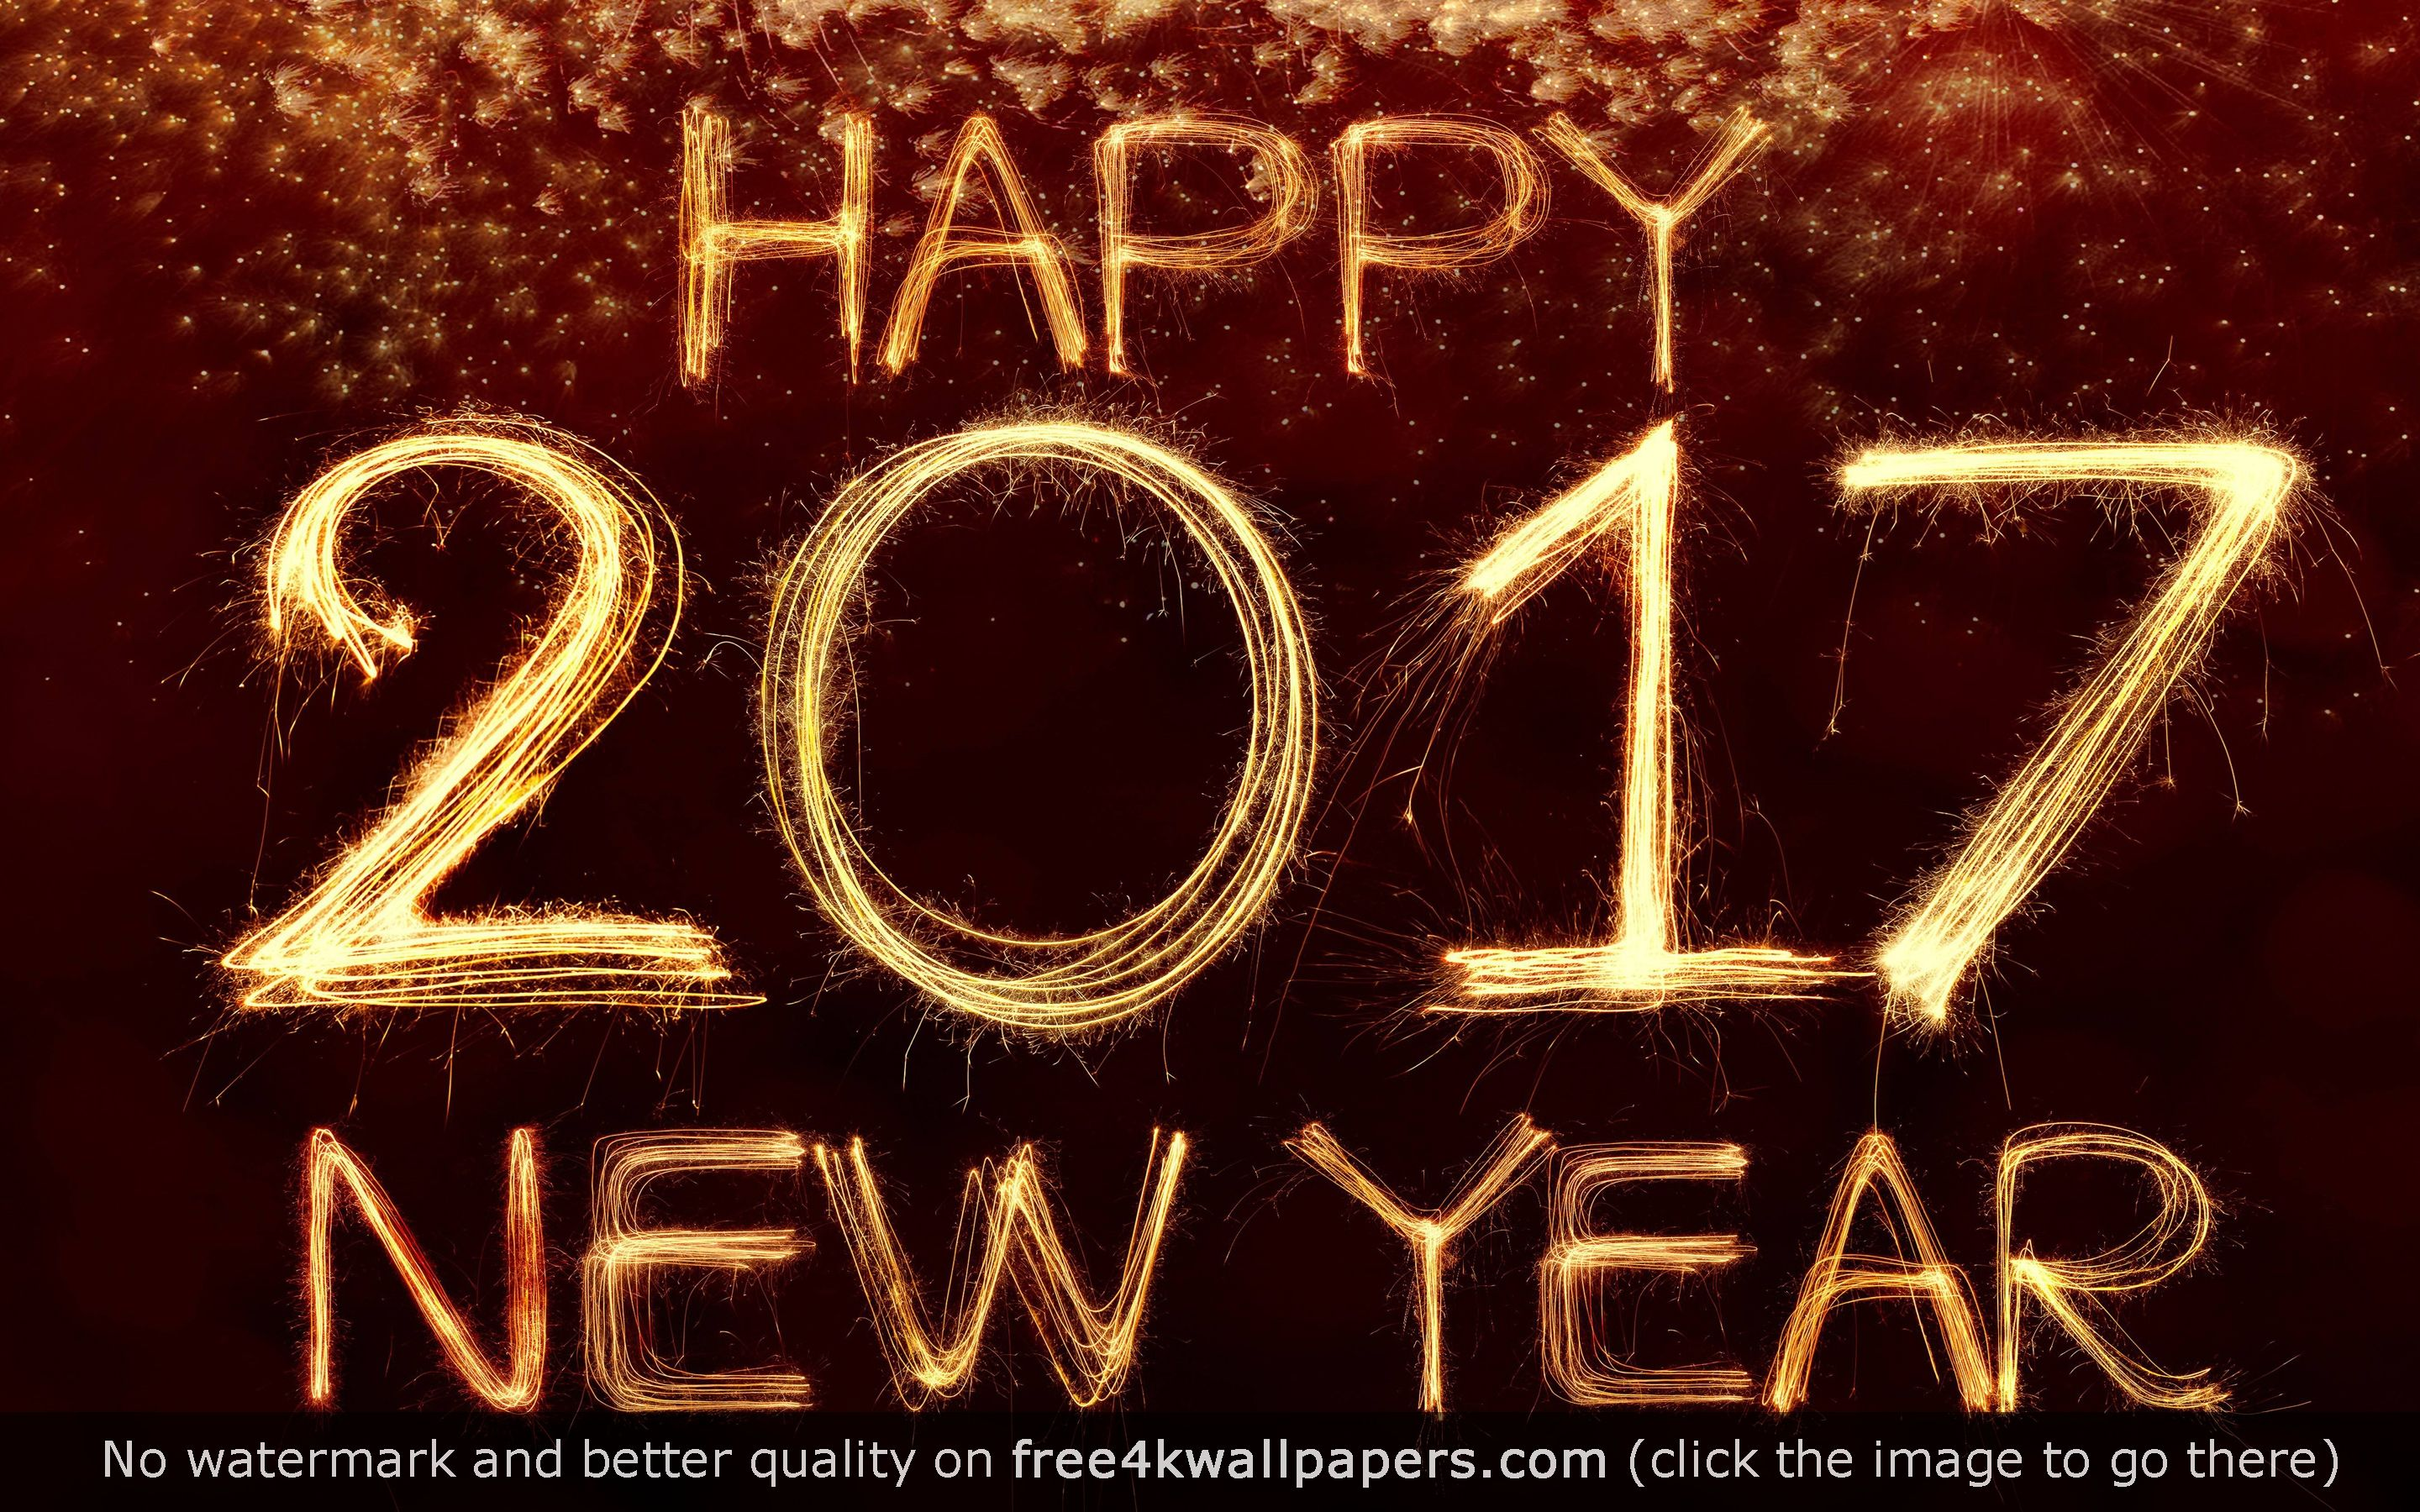 Happy New Year 4k Hd Wallpaper Download Happy New Year 4k Hd Wallpaper For Your Desktop Tablet Or Mobile Device New Year 2017 Newyear 2017 Wallpaper